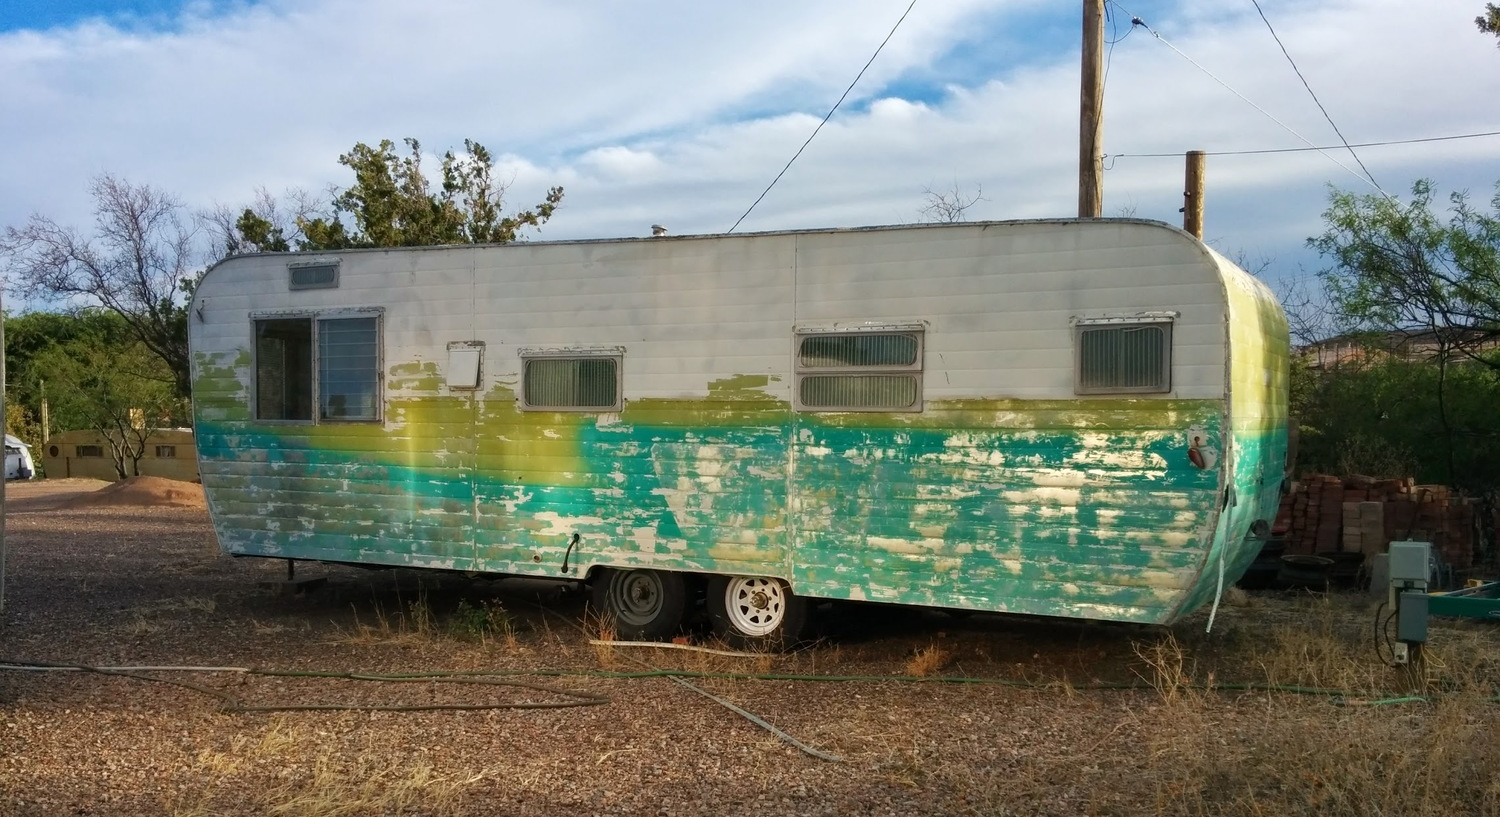 If you can find a cheap, older trailer to harvest parts from, you can save a ton of money on appliances, fixtures and more.